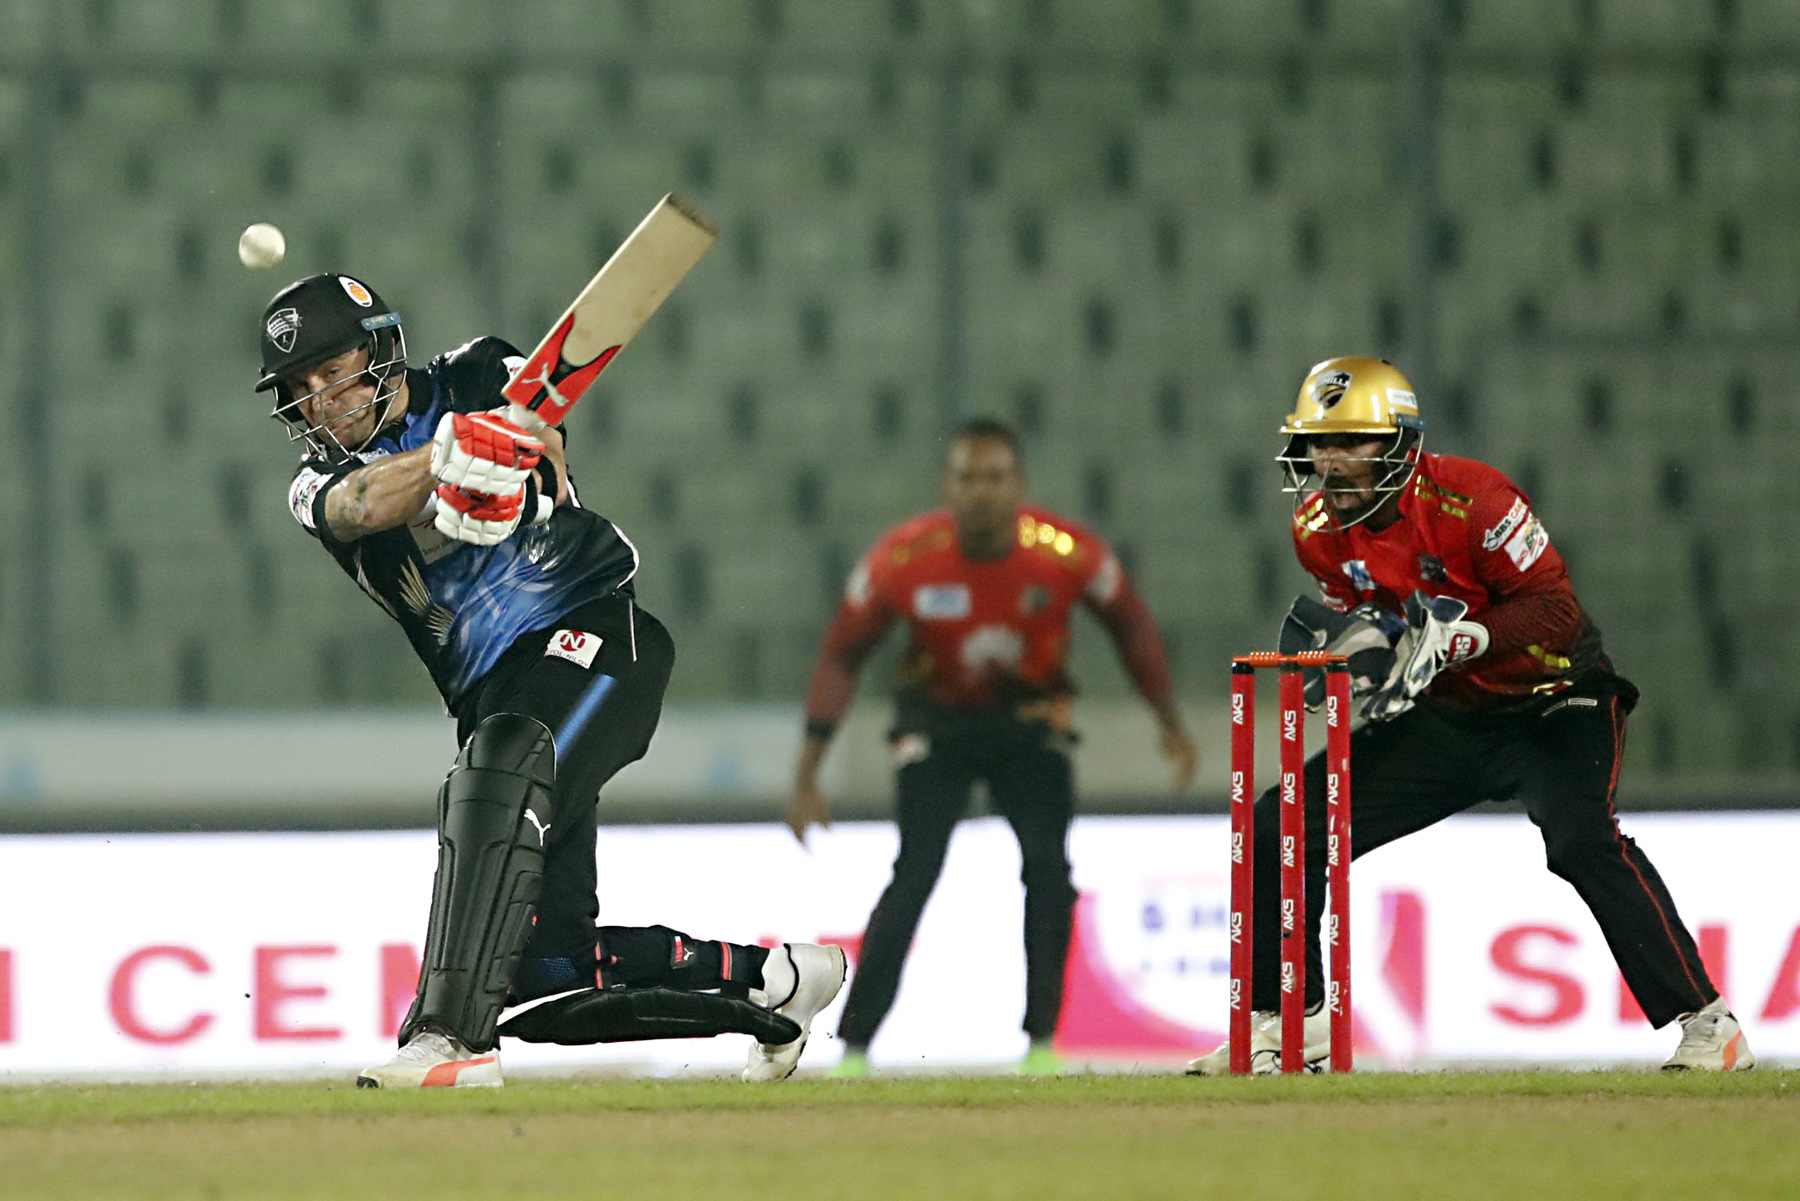 Brendon McCullum of Rangpur Riders tries to hit a ball during the Qualifier-2 match of the AKS Bangladesh Premier League (BPL) Twenty20 Cricket between Comilla Victorians and Rangpur Riders at the Sher-e-Bangla National Cricket Stadium in the city's Mirpur on Monday.